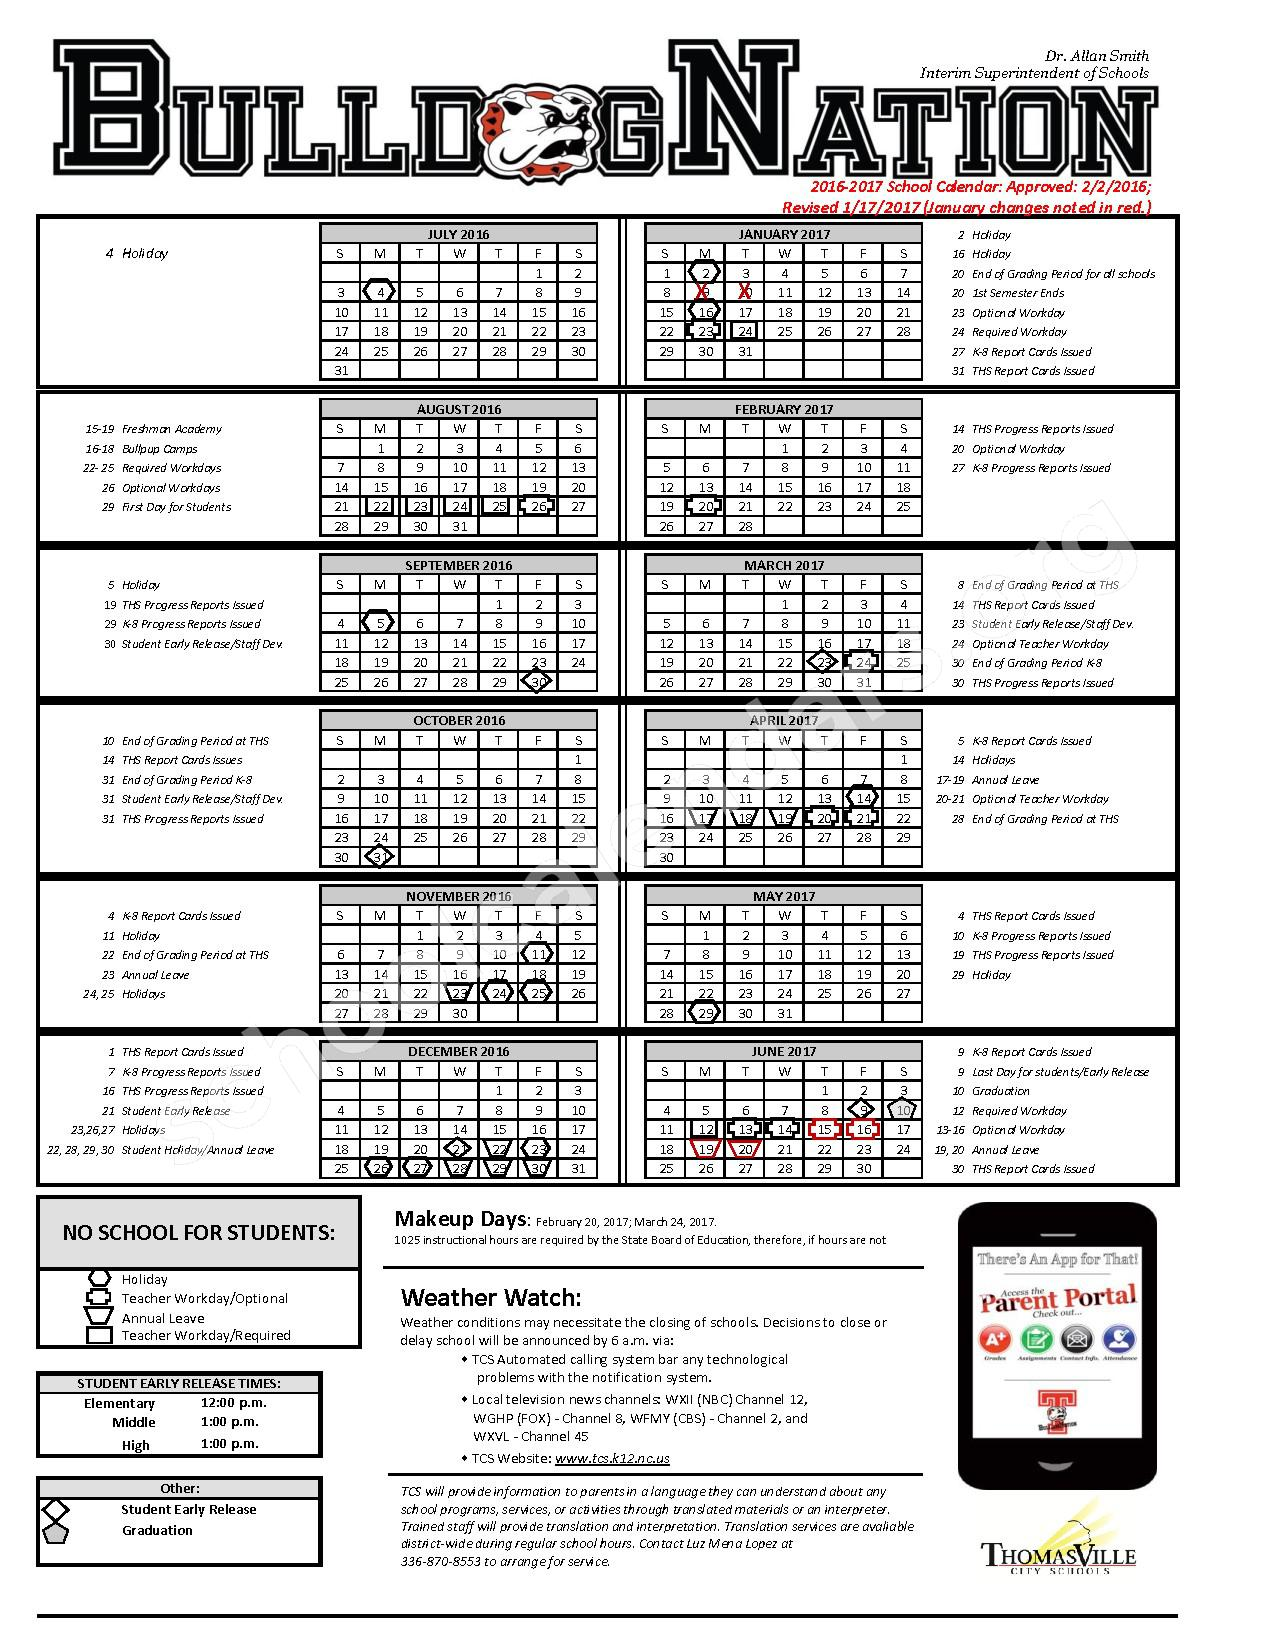 2016 - 2017 School Calendar – Thomasville City Schools – page 1